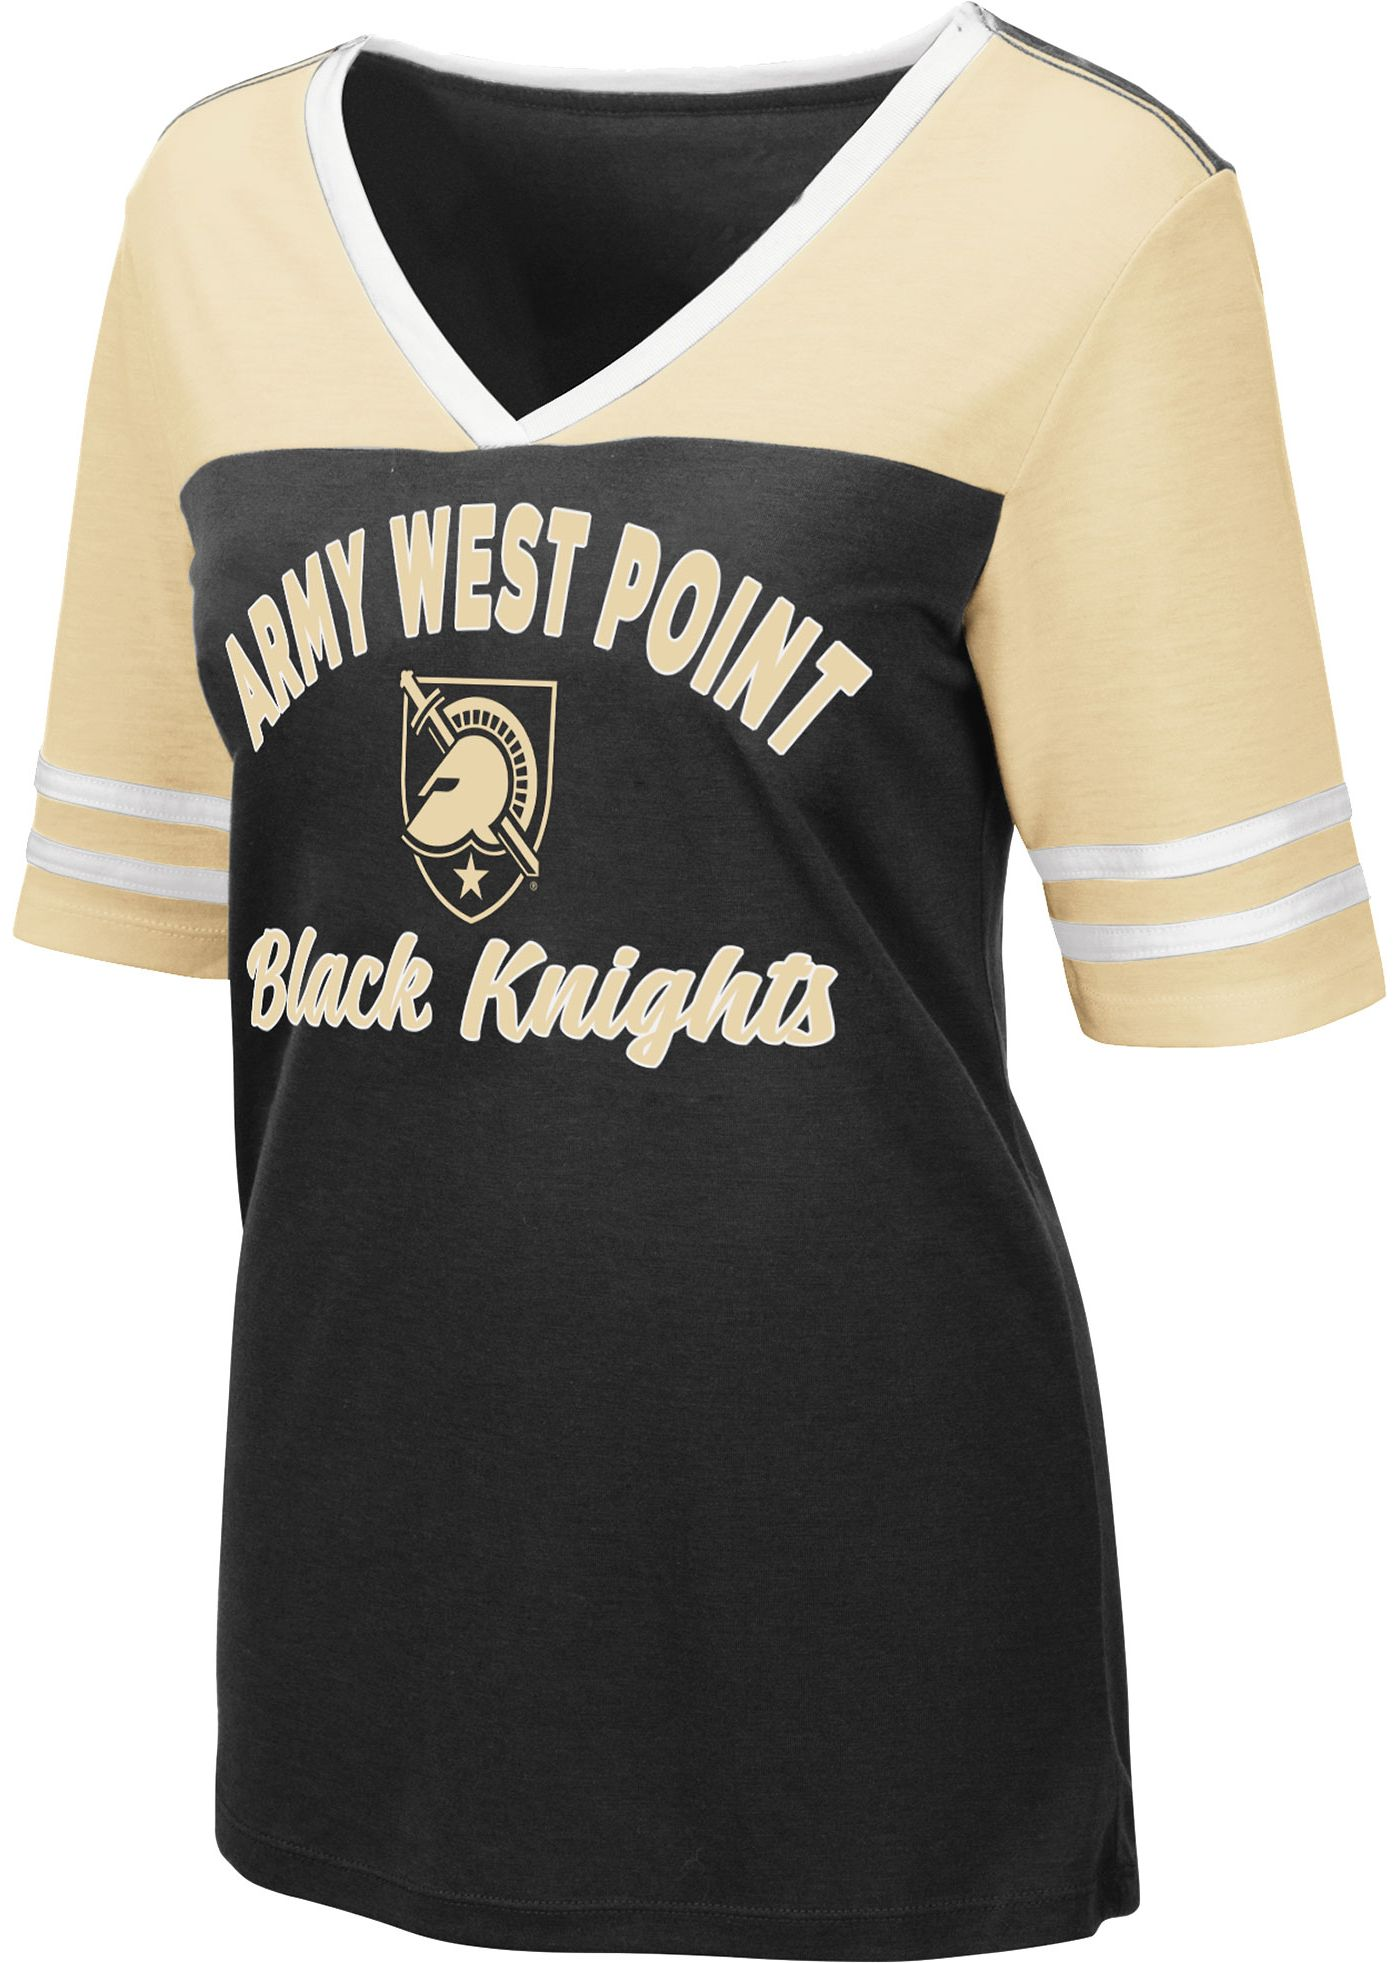 Colosseum Women's Army West Point Black Knights Army Black/USMA Gold Samantha T-Shirt